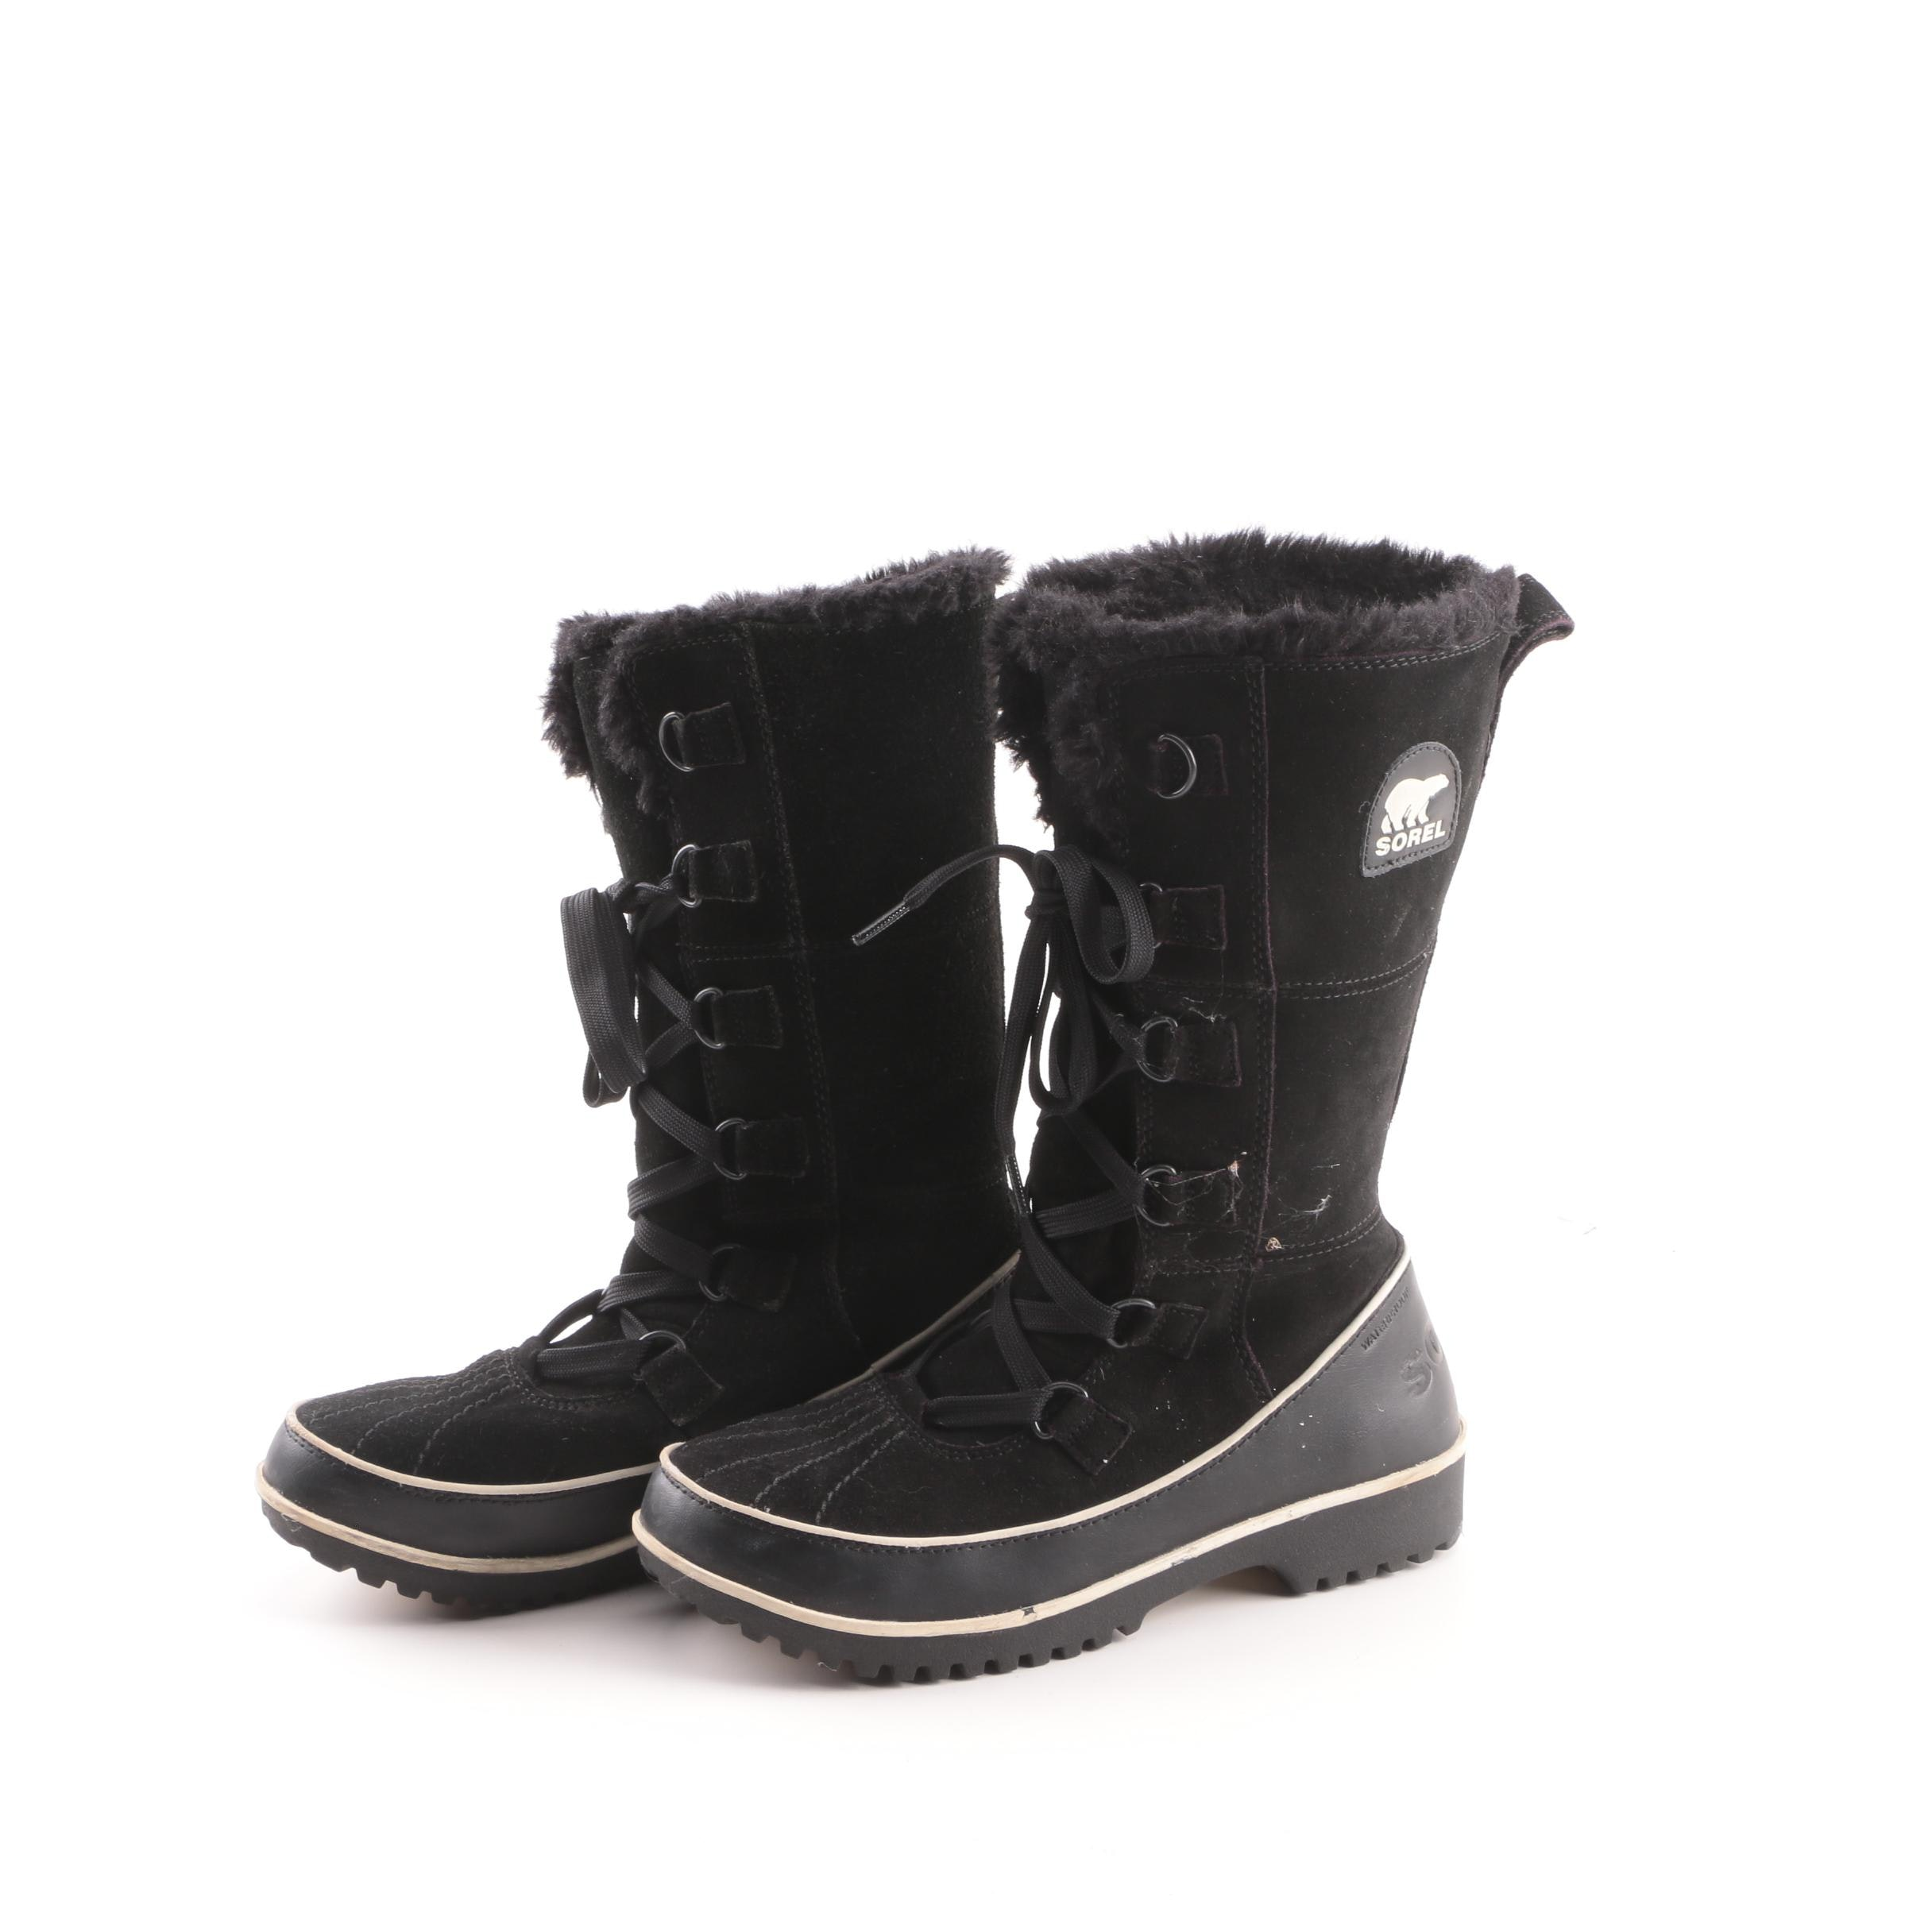 Women's Sorel Black Waterproof Winter Boots